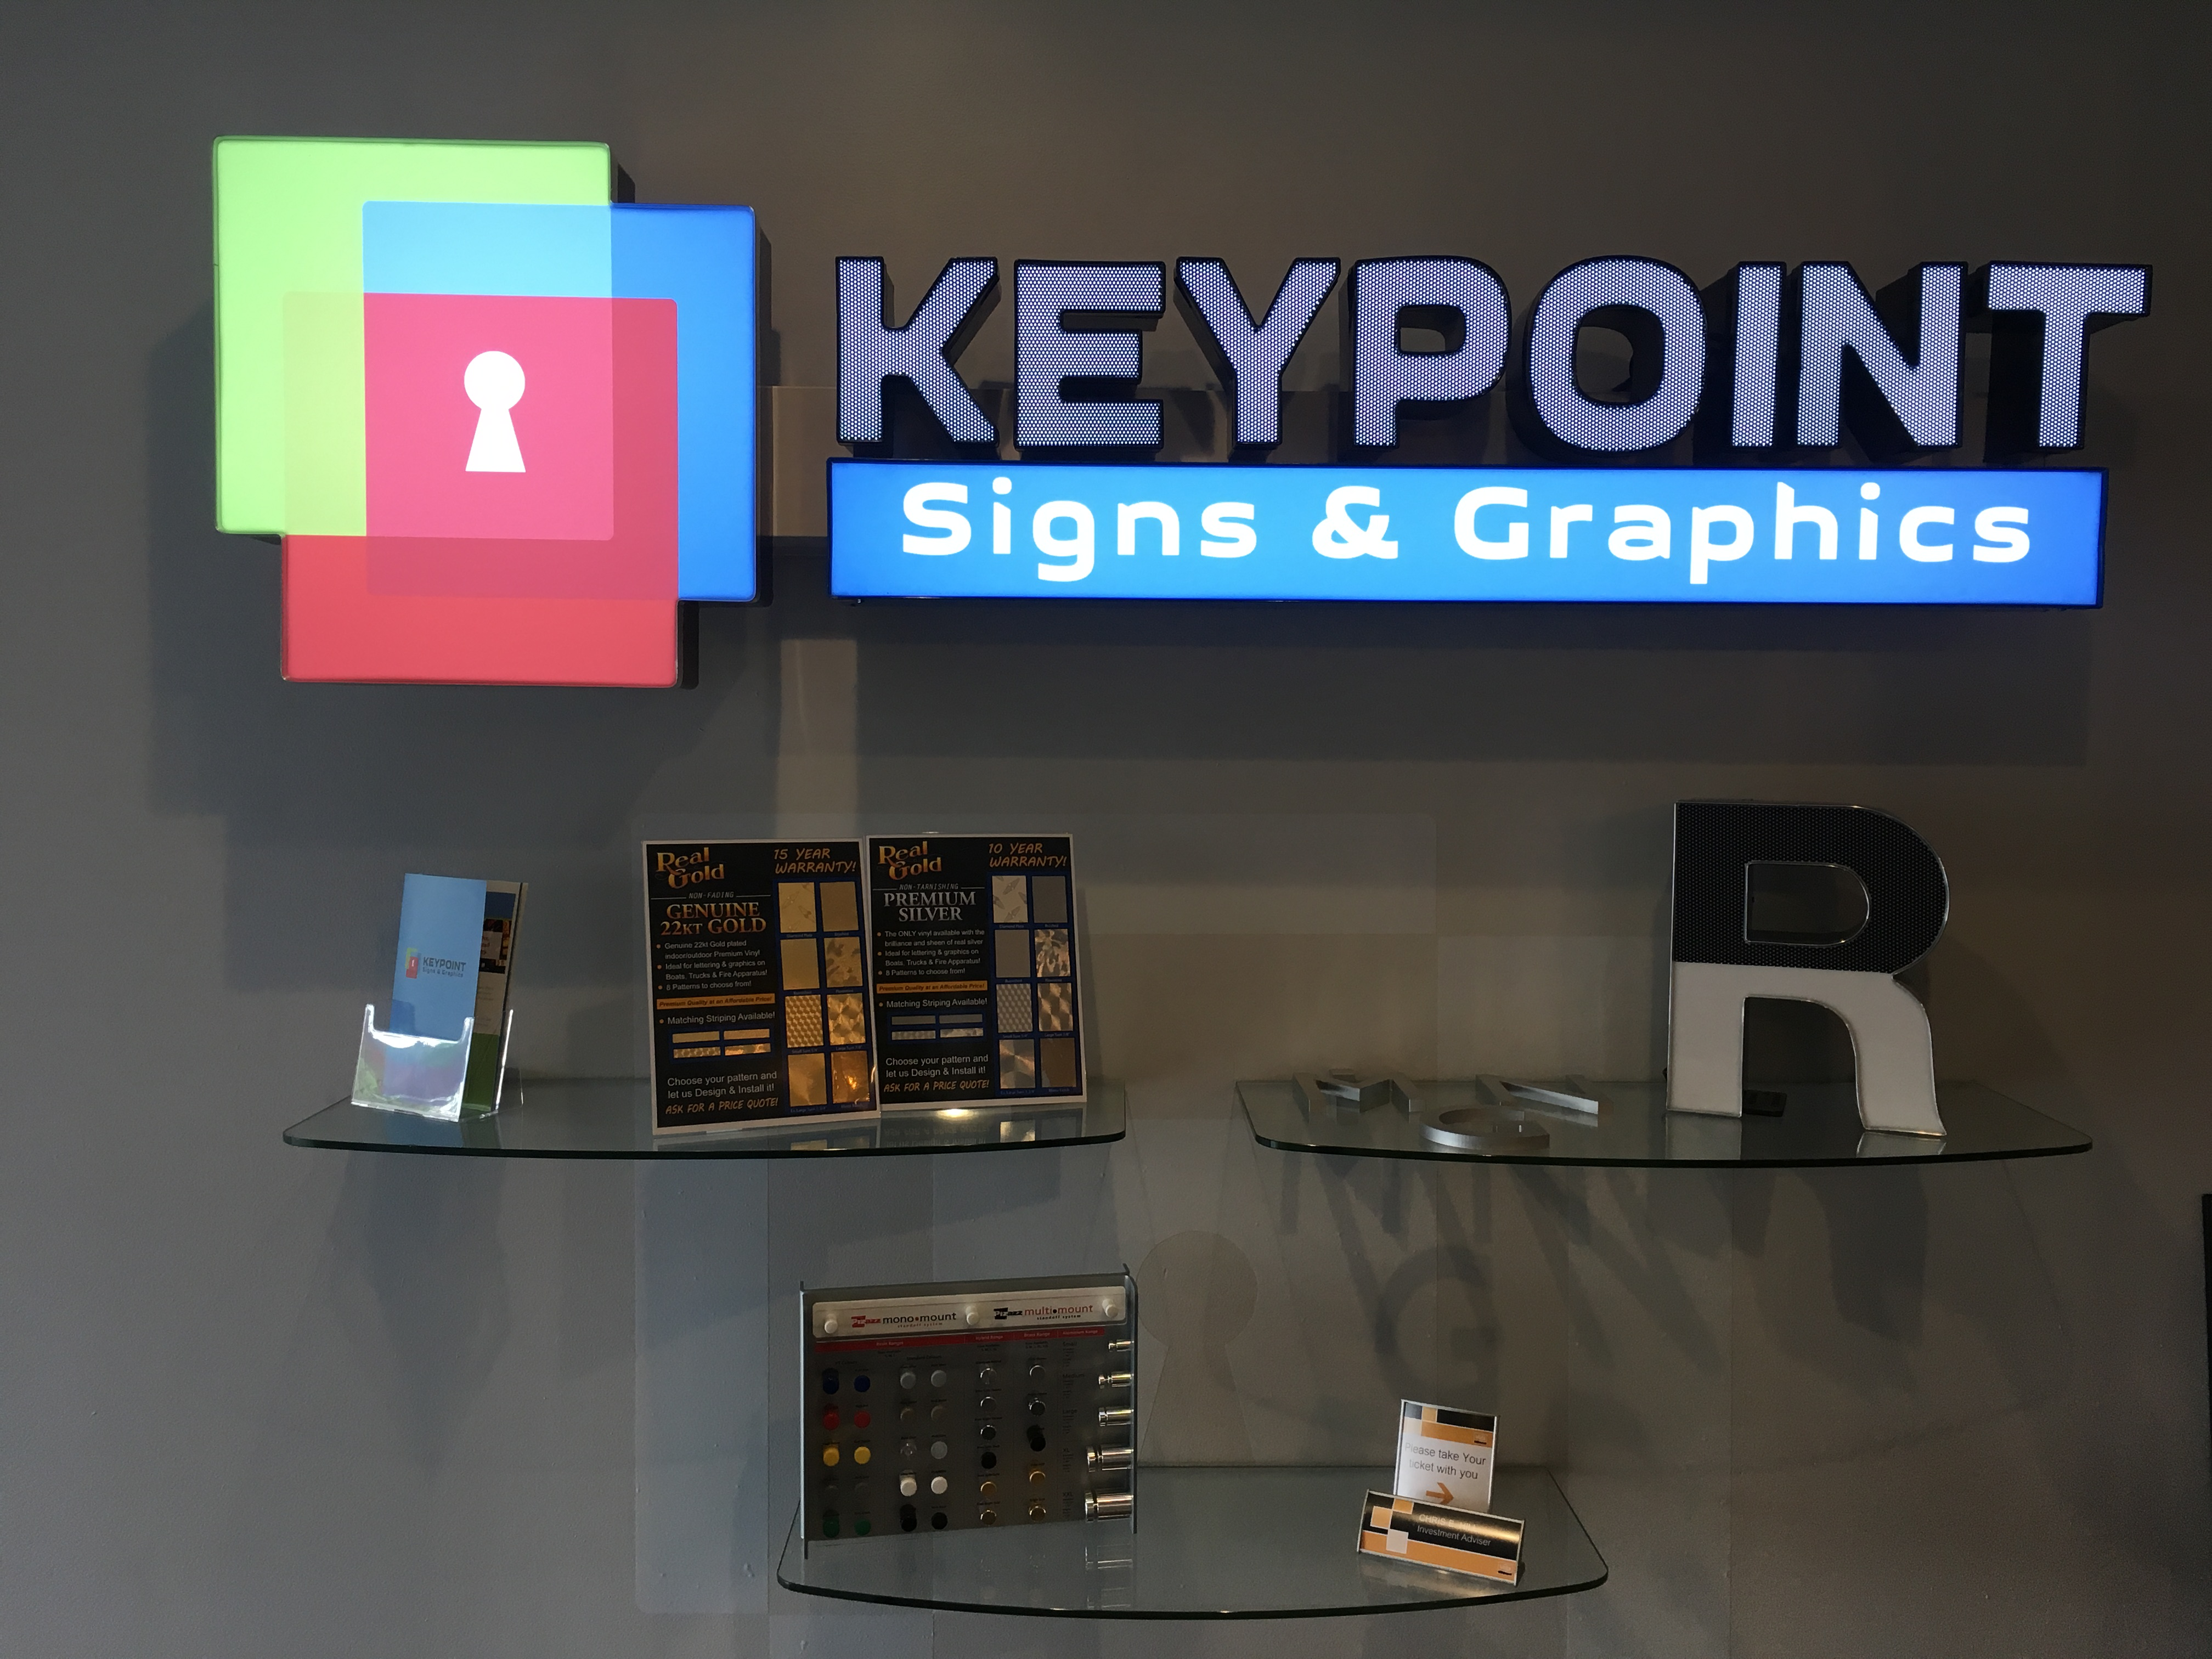 KeyPoint Signs & Graphics image 5